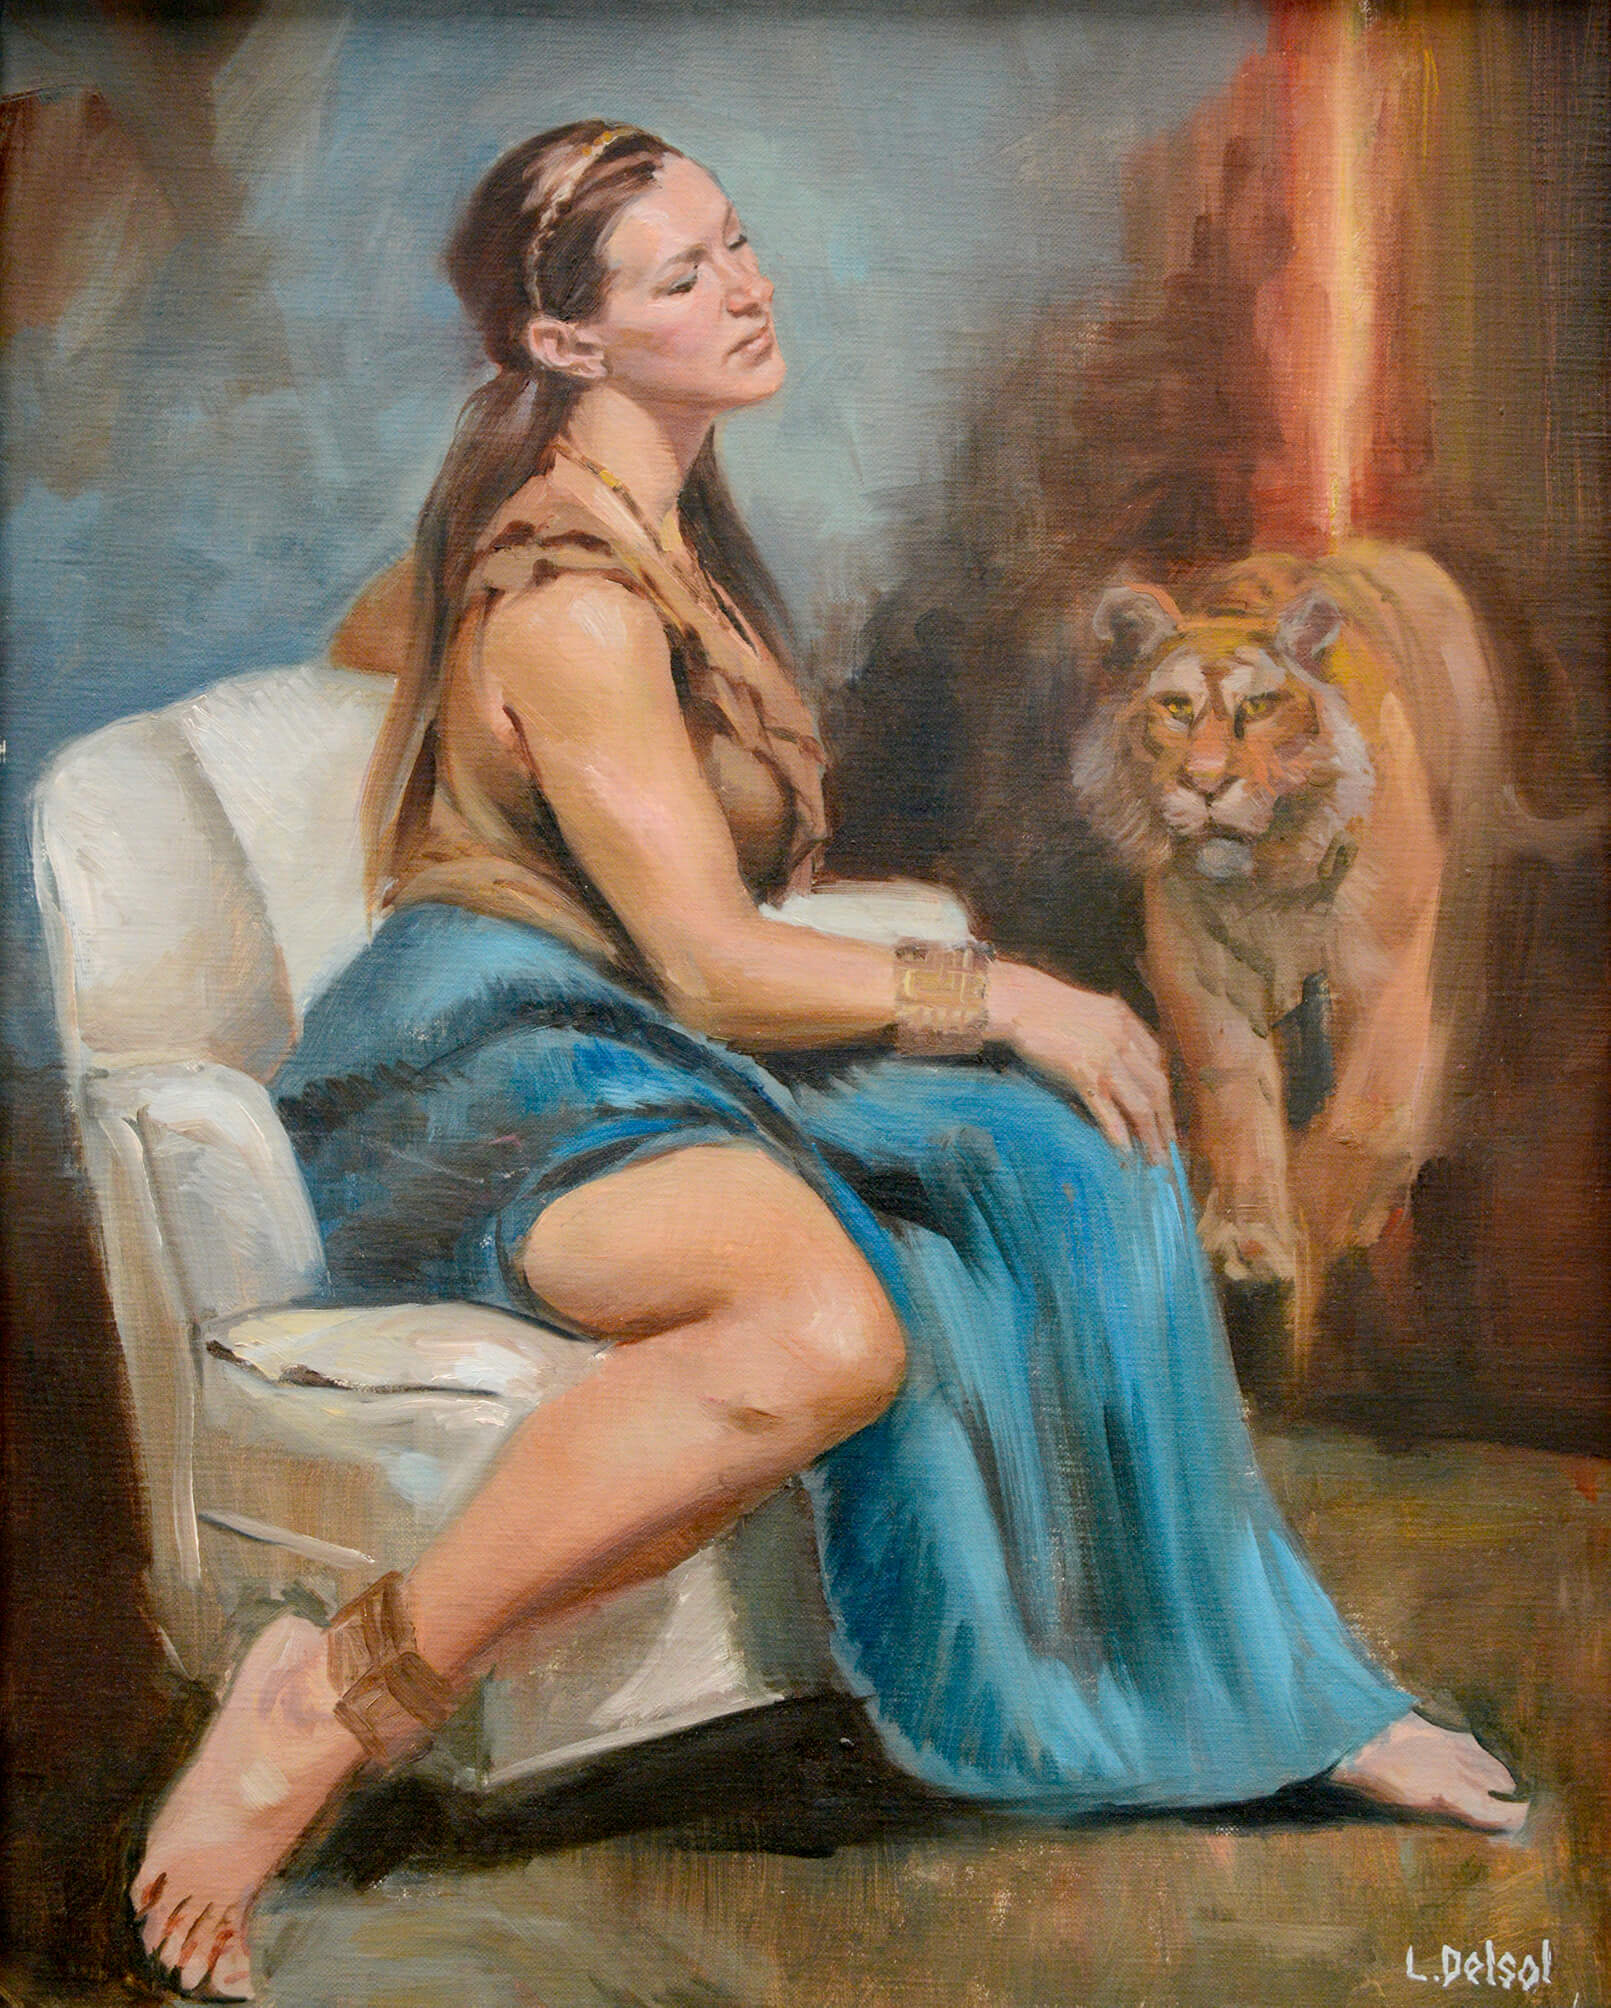 Realistic full figure oil portrait of a young woman with long blonde hair in 3/4 profile gazing off into the room as a tiger approaches